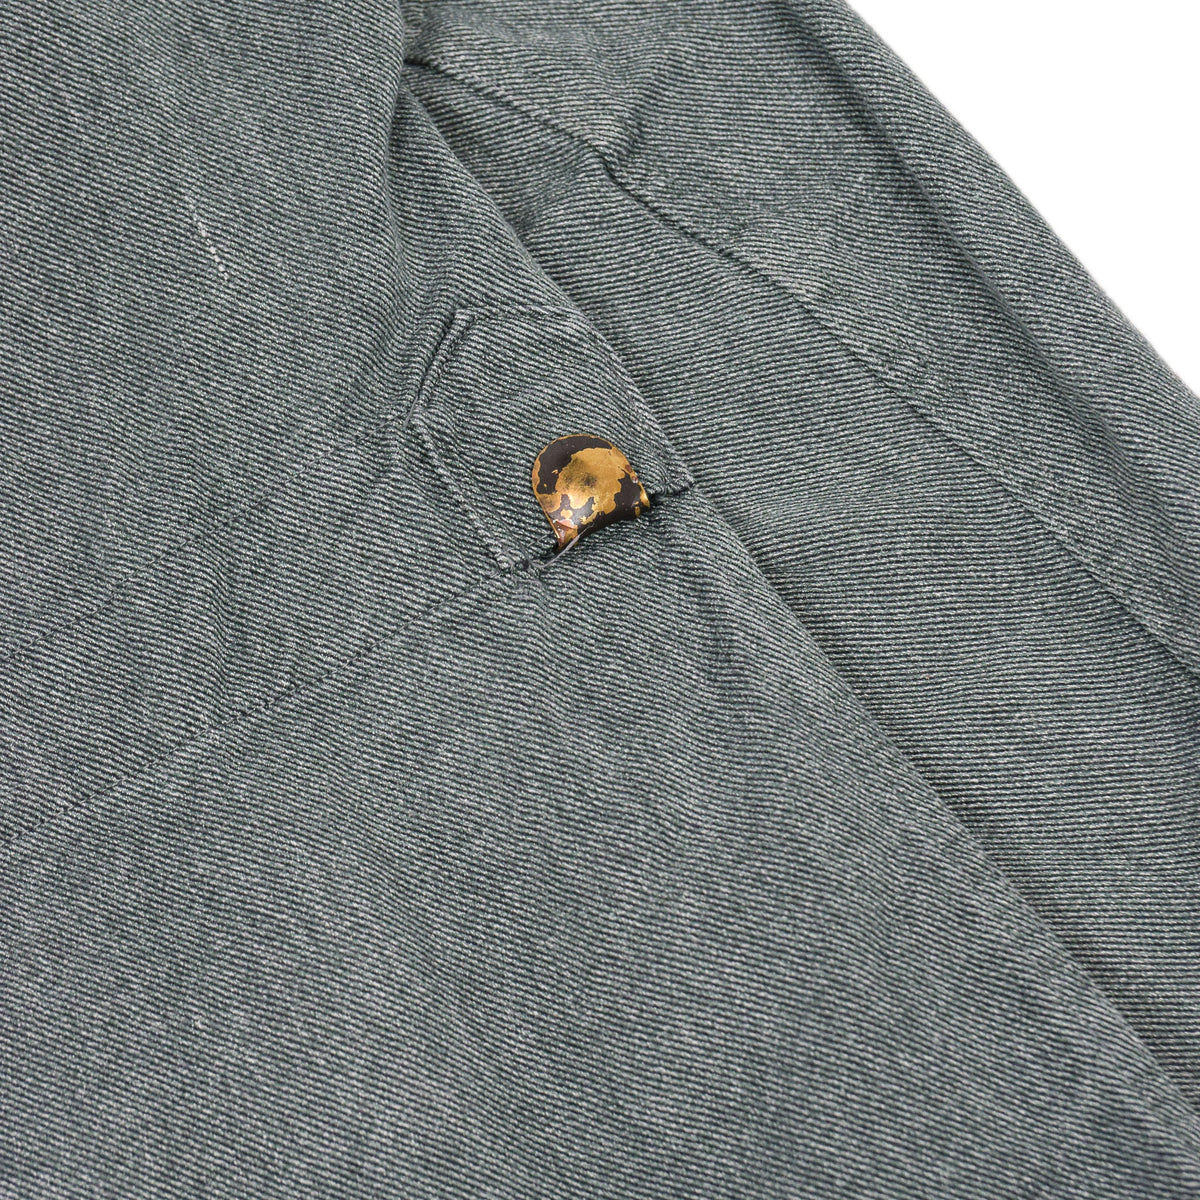 Vintage 60s Swiss Army Salt & Pepper Denim Worker Chore Jacket L back detail